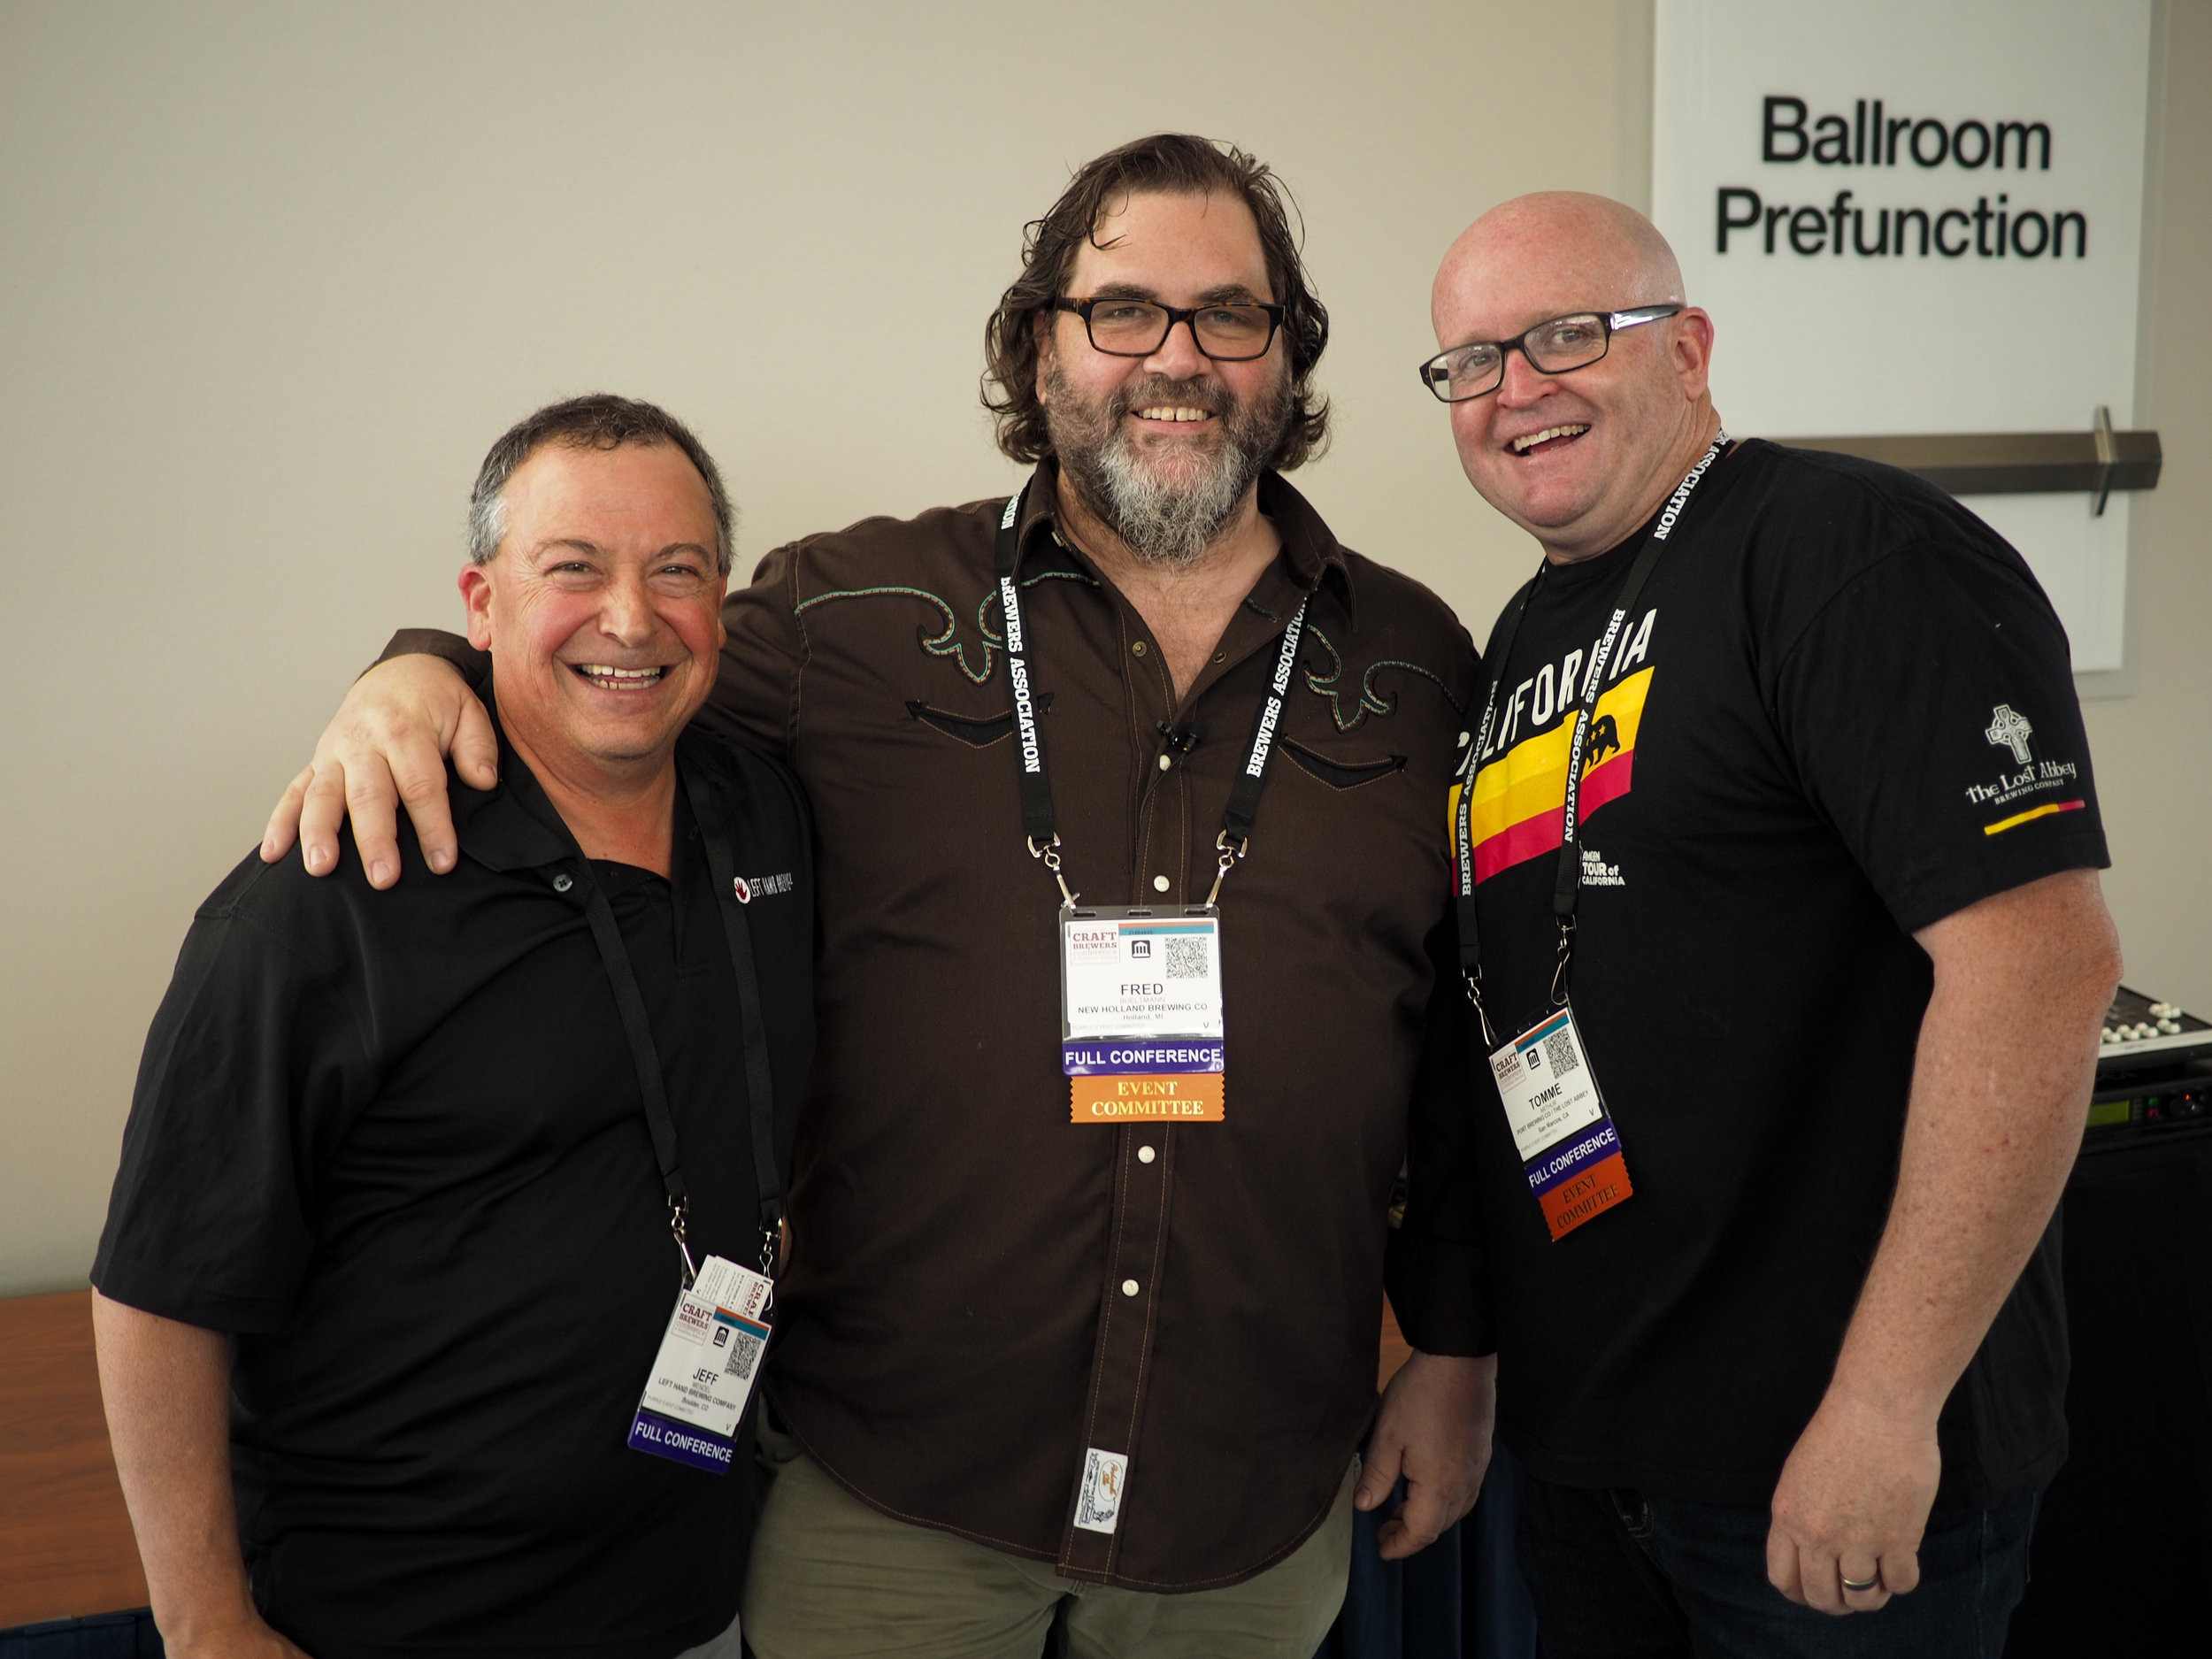 Jeff Mendel, Left Hand Brewing Company, Fred Bueltmann, Tomme Arthur, Port Brewing Company/The Lost Abbey